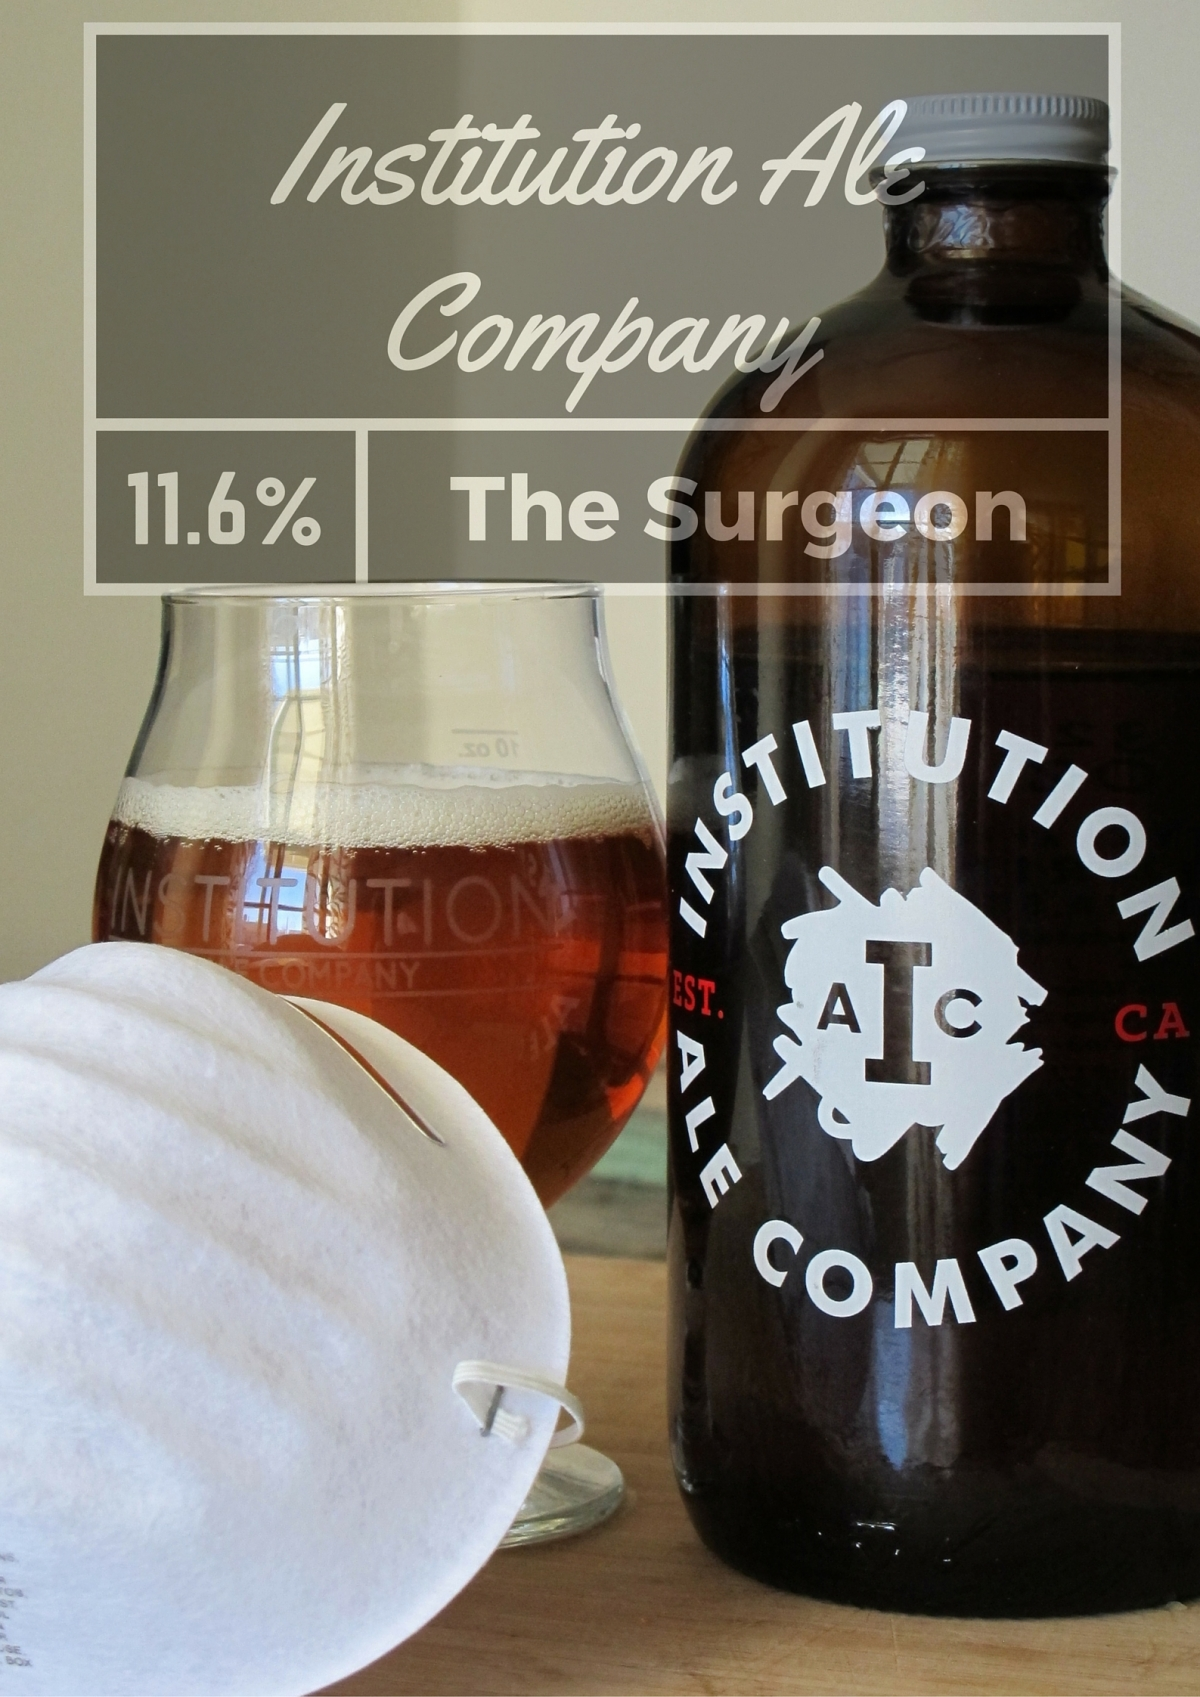 Beer review: The Surgeon IPA (Institution AleCompany)